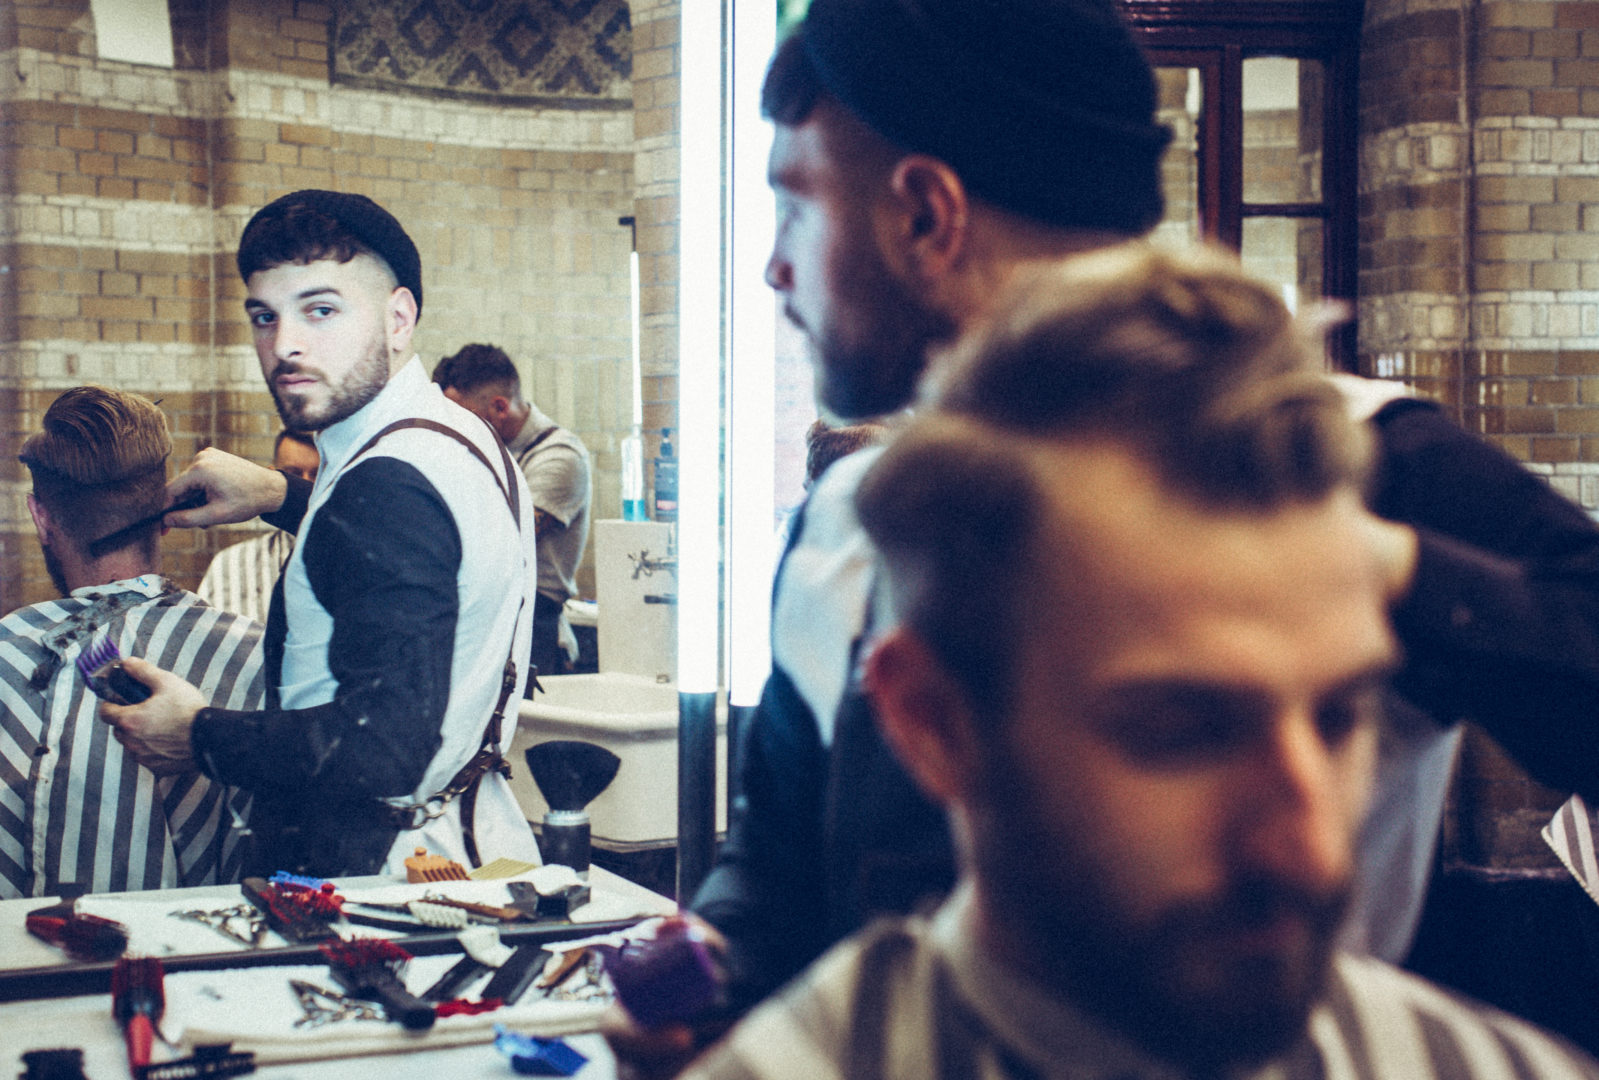 Amsterdam Barbershop – Cut Throat Barber & Coffee